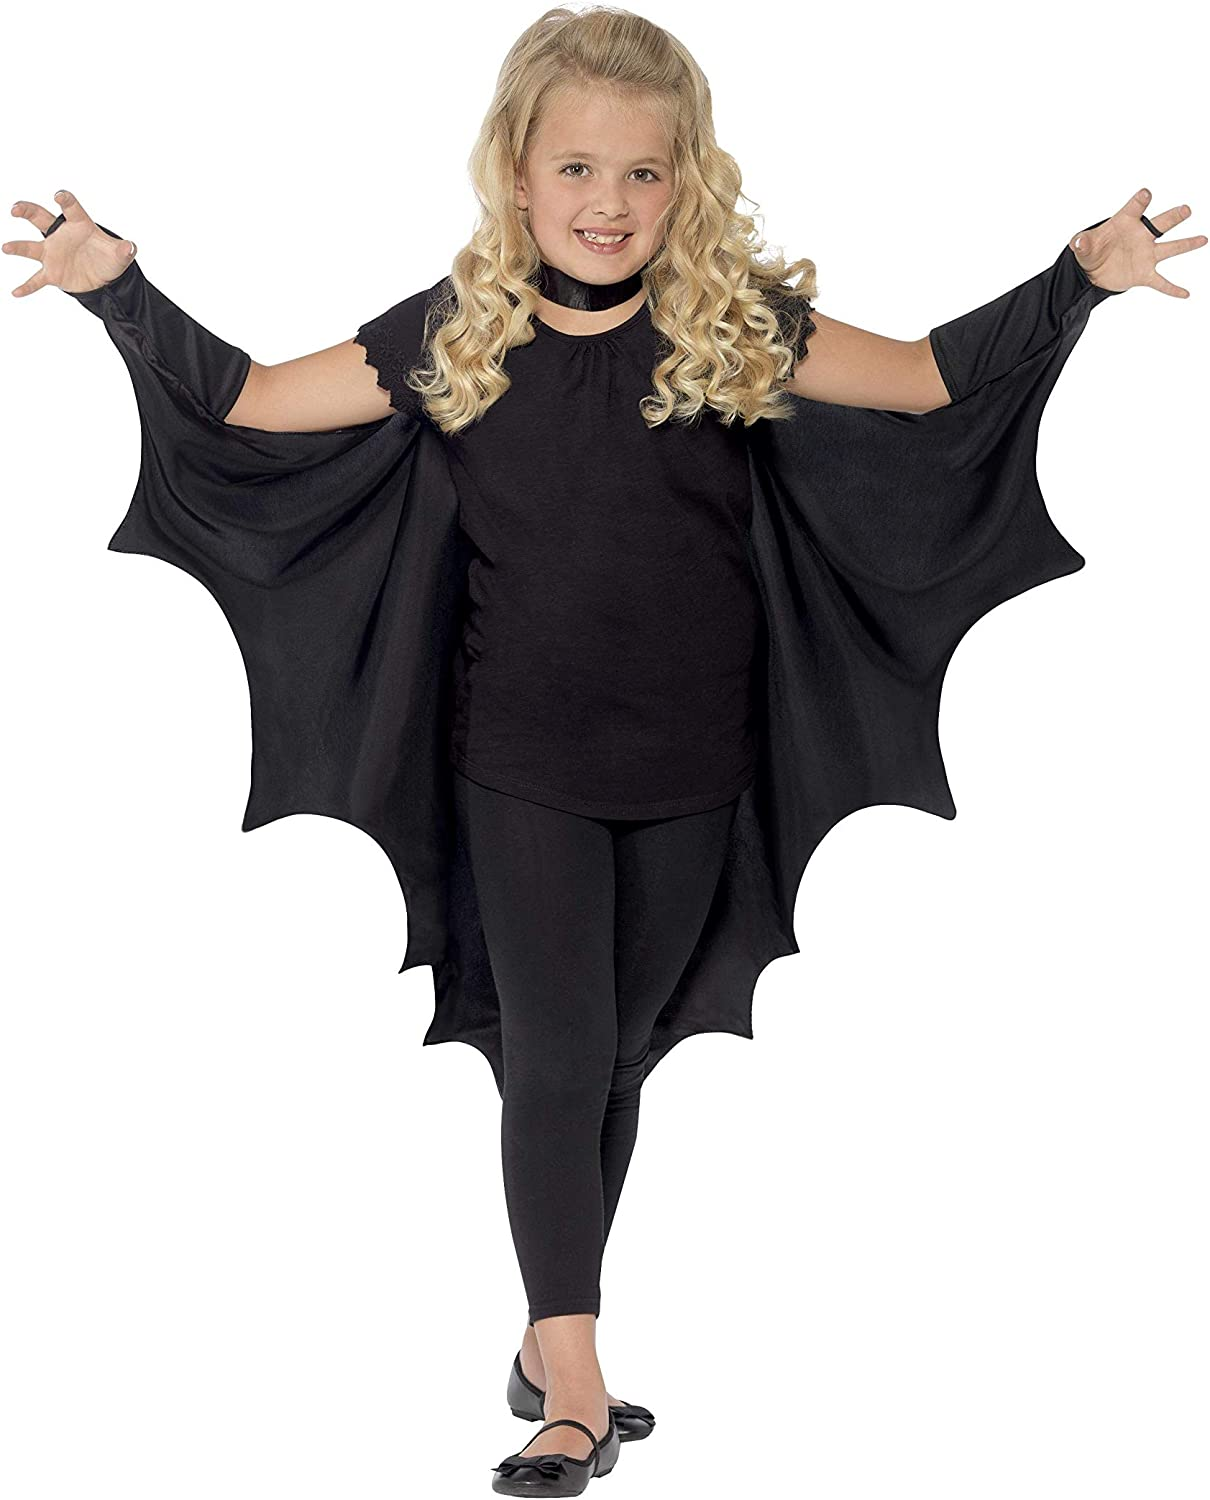 Child/'s Nero Pipistrello Costume fantastico per libro settimana